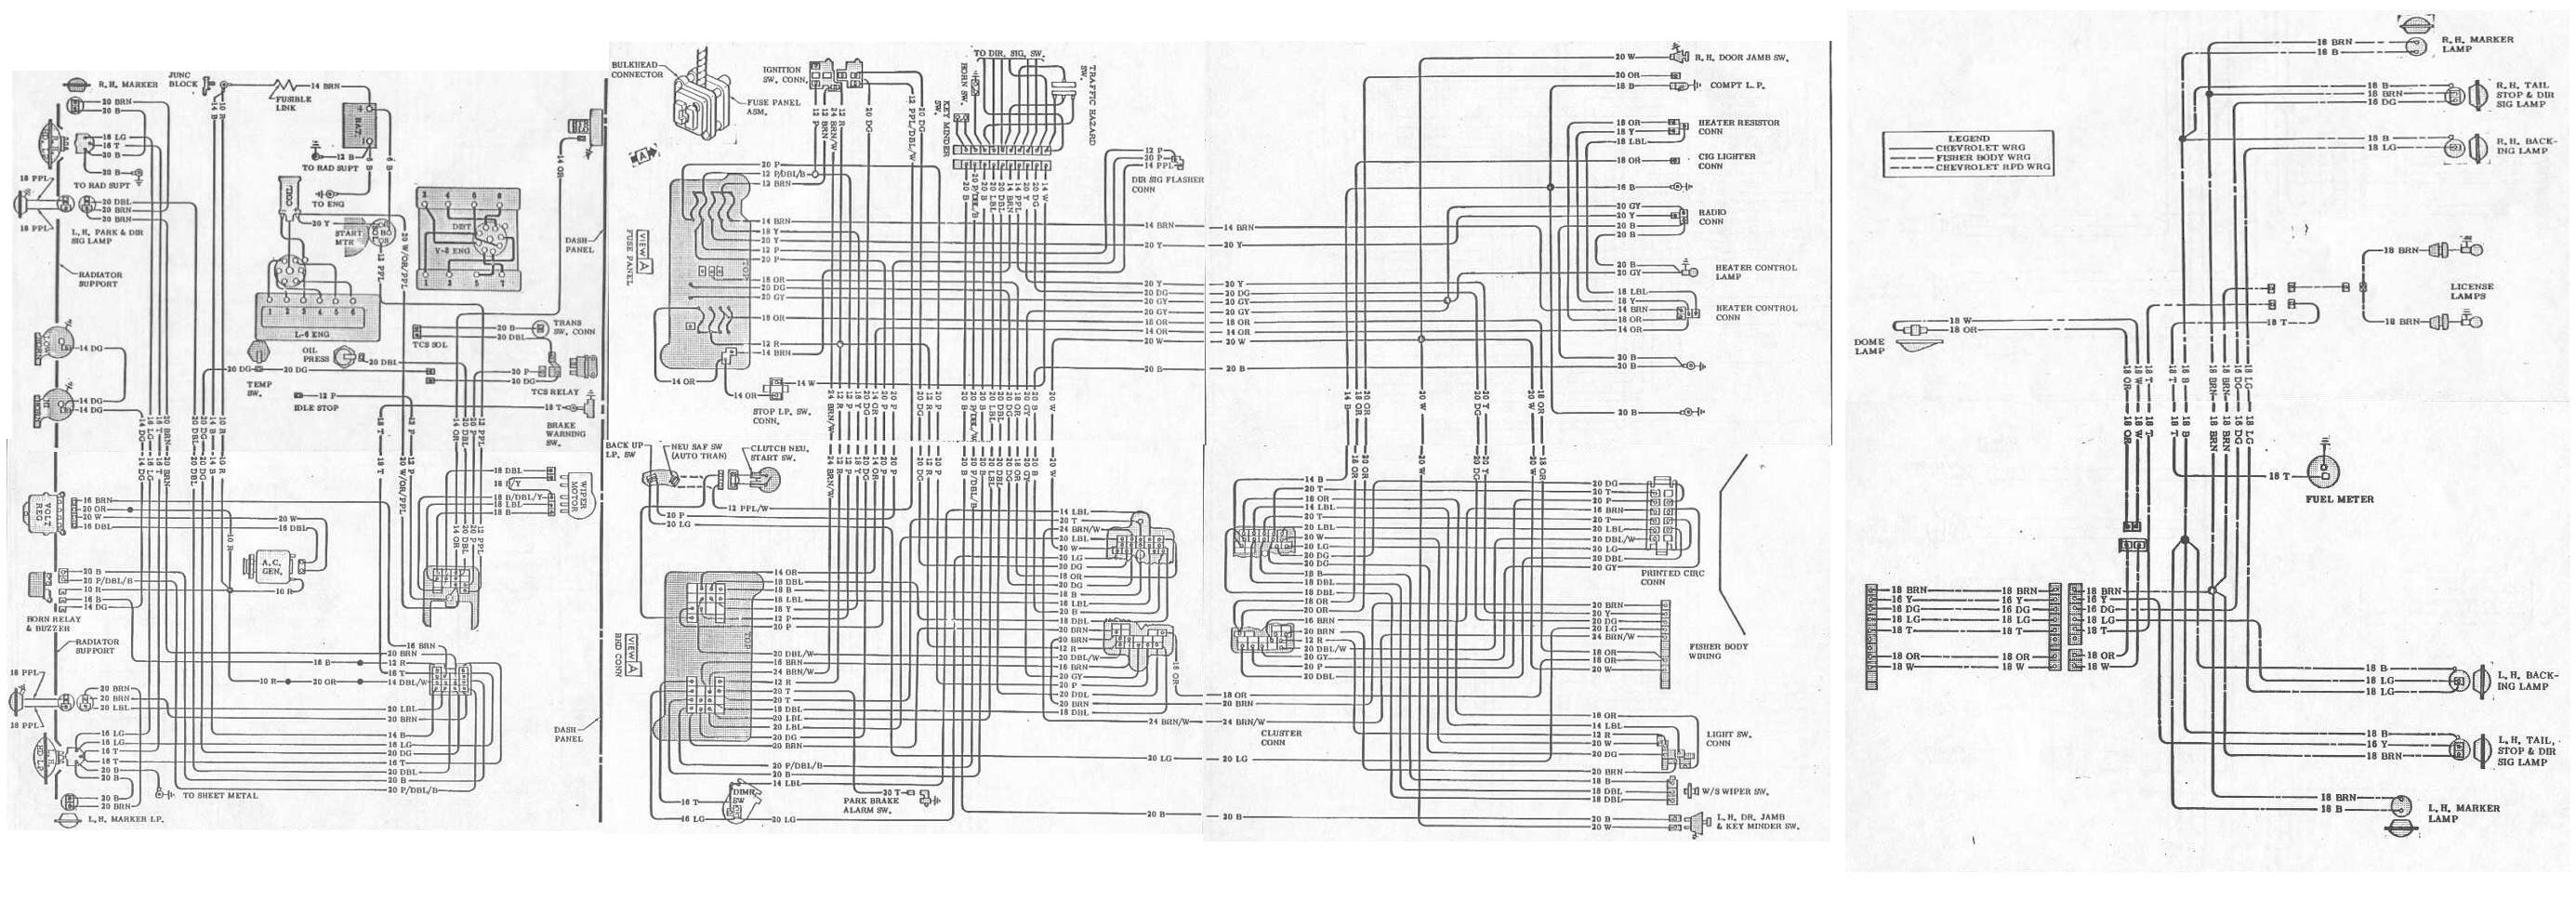 1980 Pontiac Trans Am Ac Diagram